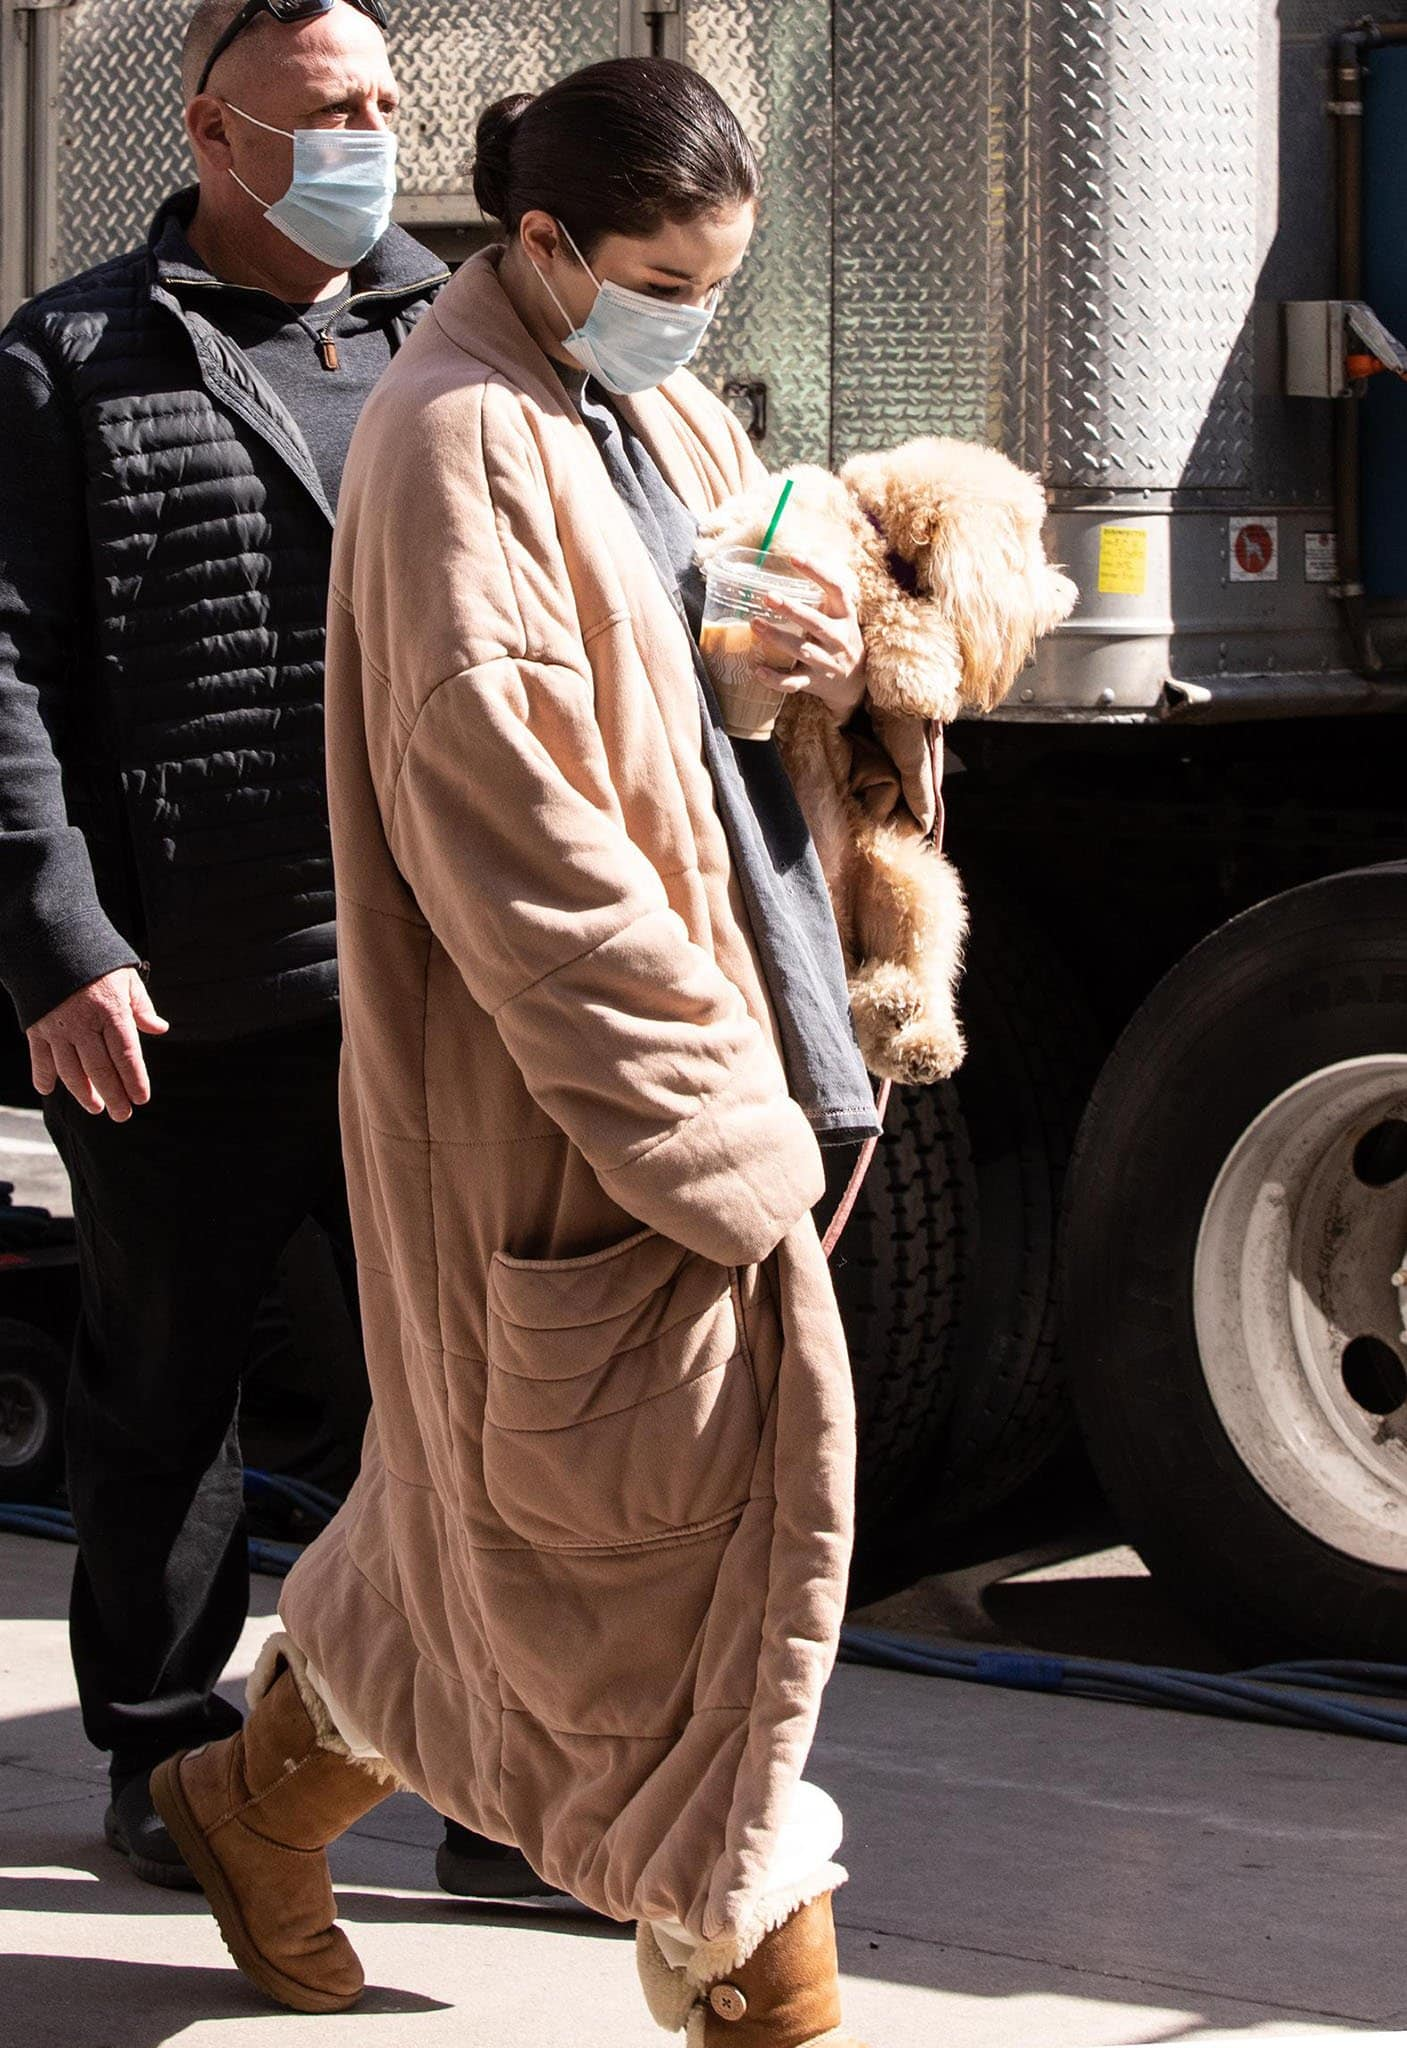 Selena Gomez looks cozy in Free People duvet coat and Ugg boots while carrying her fluffy dog, Daisy, on the set